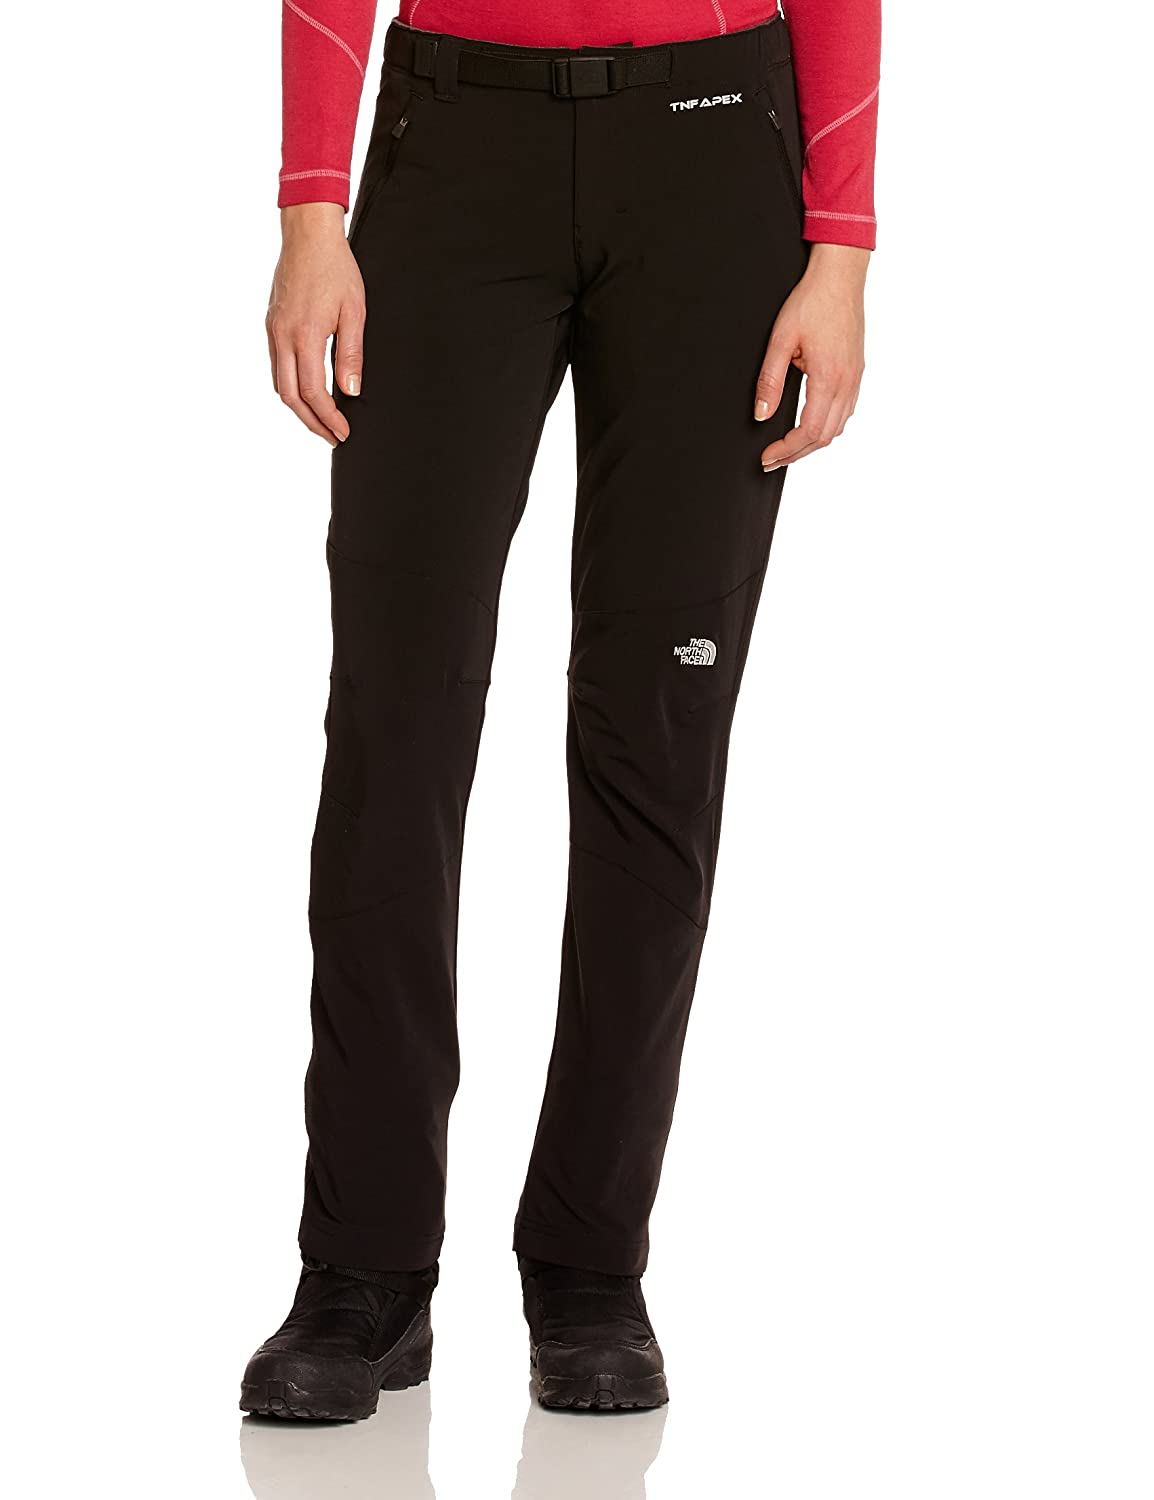 MultiCouleure L The North FaceWo Diablo Pantalons Femme